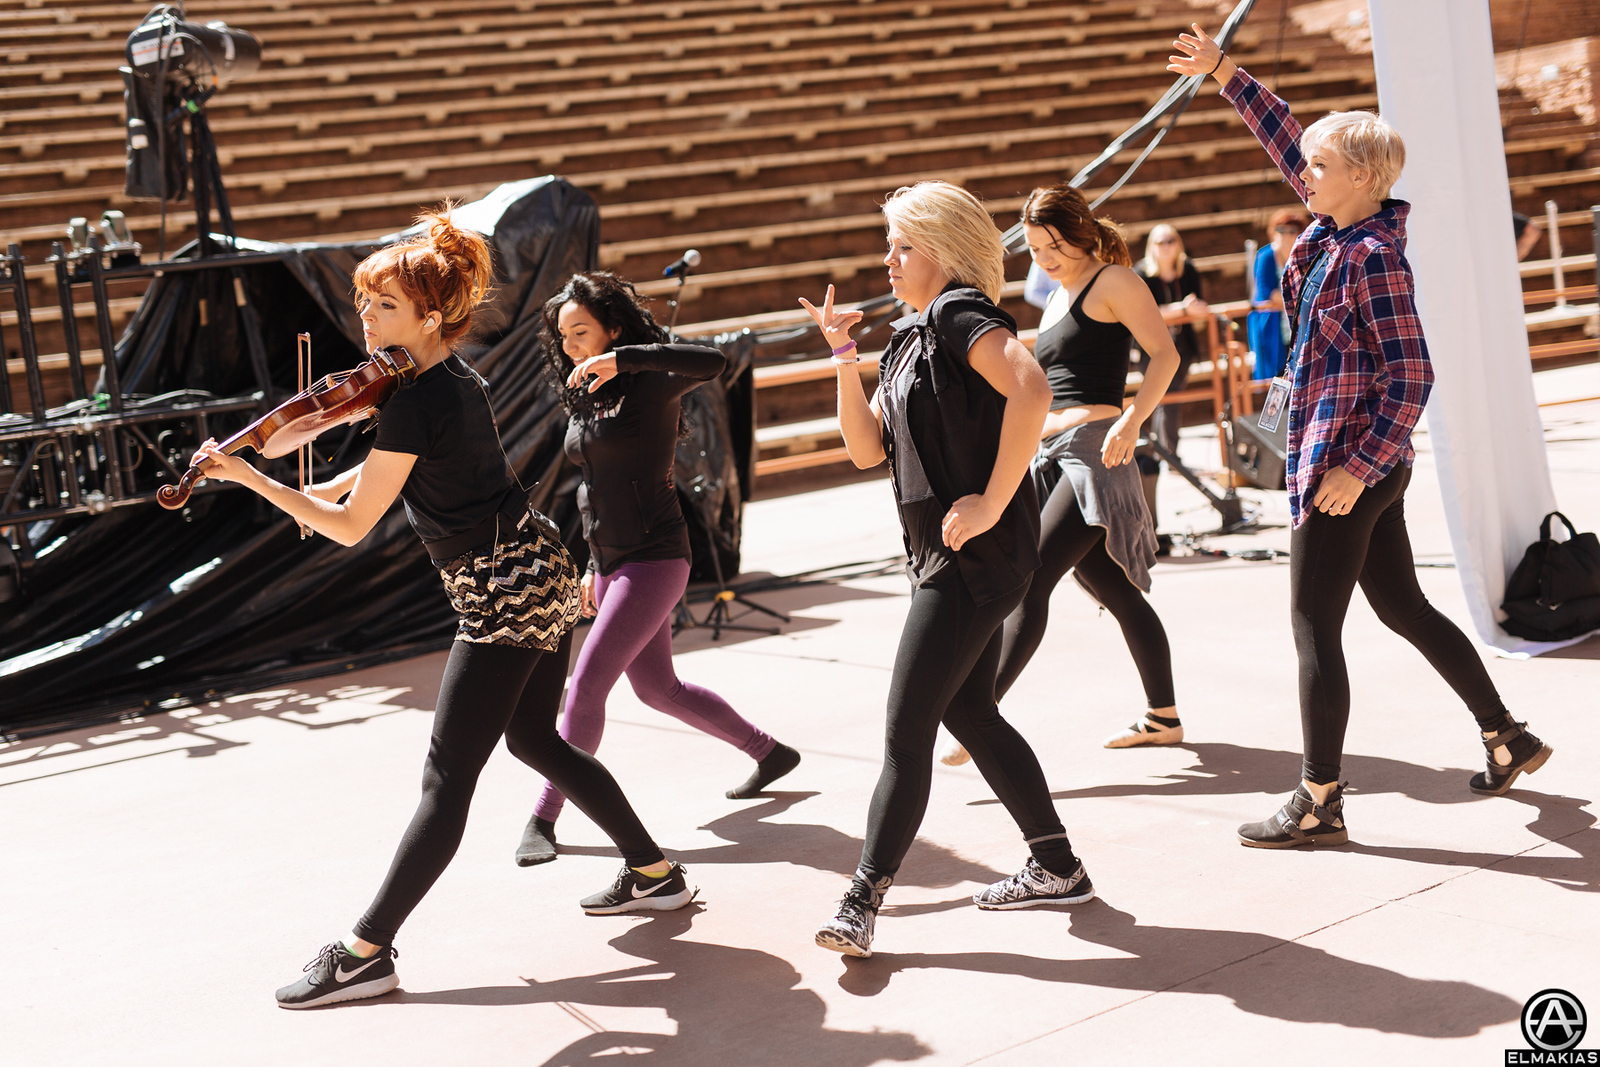 Lindsey Stirling and dancers at the Red Rocks Amphitheater for soundcheck by Adam Elmakias